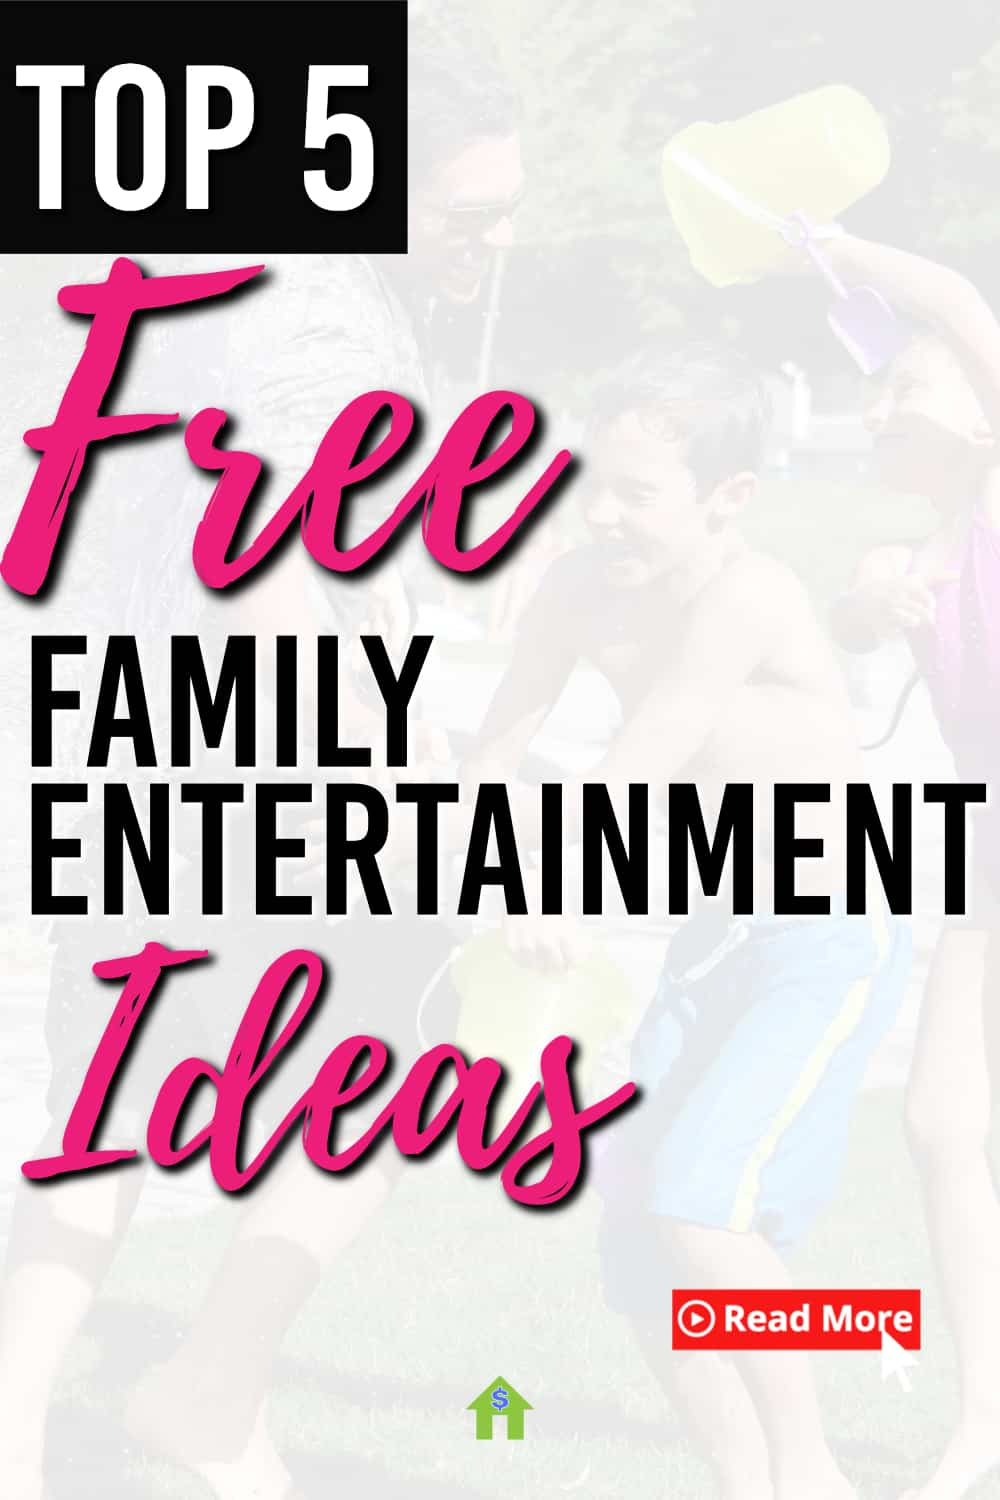 Are you looking for some FREE ways to entertain your family? Here's 5 Free Family Entertainment Ideas  to keep you busy this weekend. Family entertainment ideas | Free entertainment | Saving Money Tips | Frugal Living | fun free things to do free things | fun free things to do with kids | free things to do with kids in summer free things to do with kids | #freethingstodo #frugal #kidsactivities  #kids